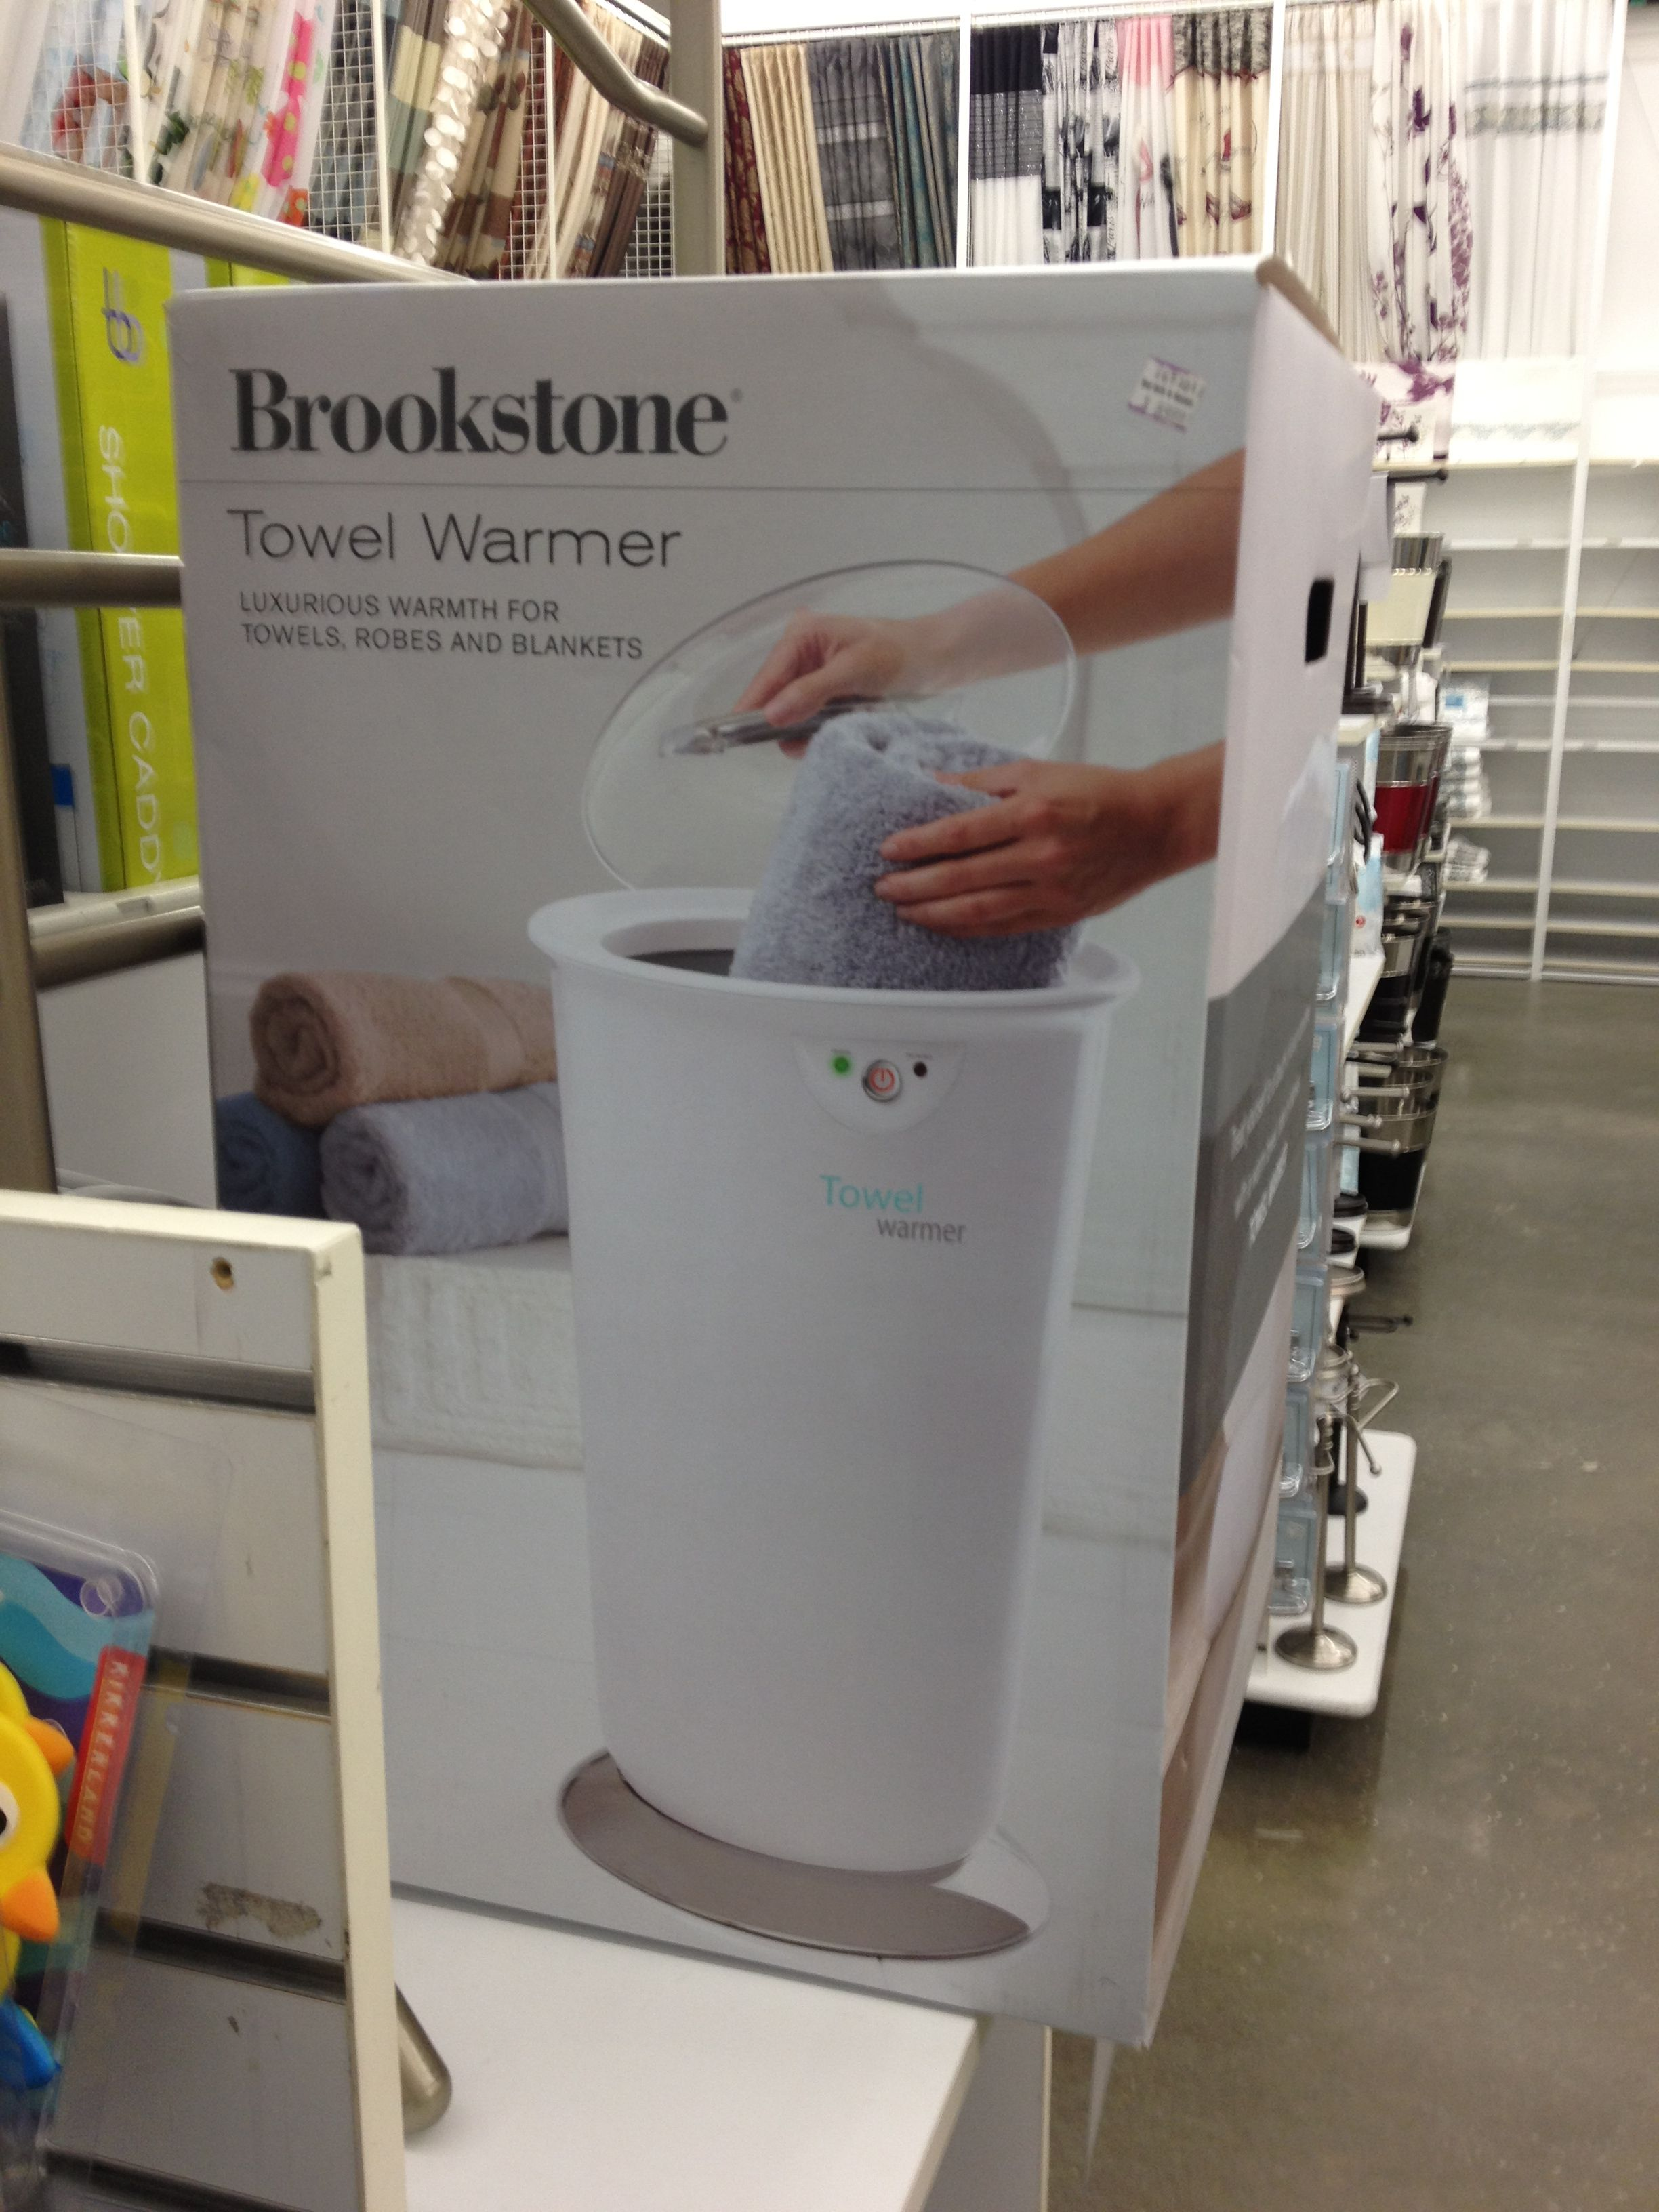 Towel Warmer Bed Bath And Beyond Brookstone Towel Warmer $89 At Bed Bath And Beyond  Bed Bath